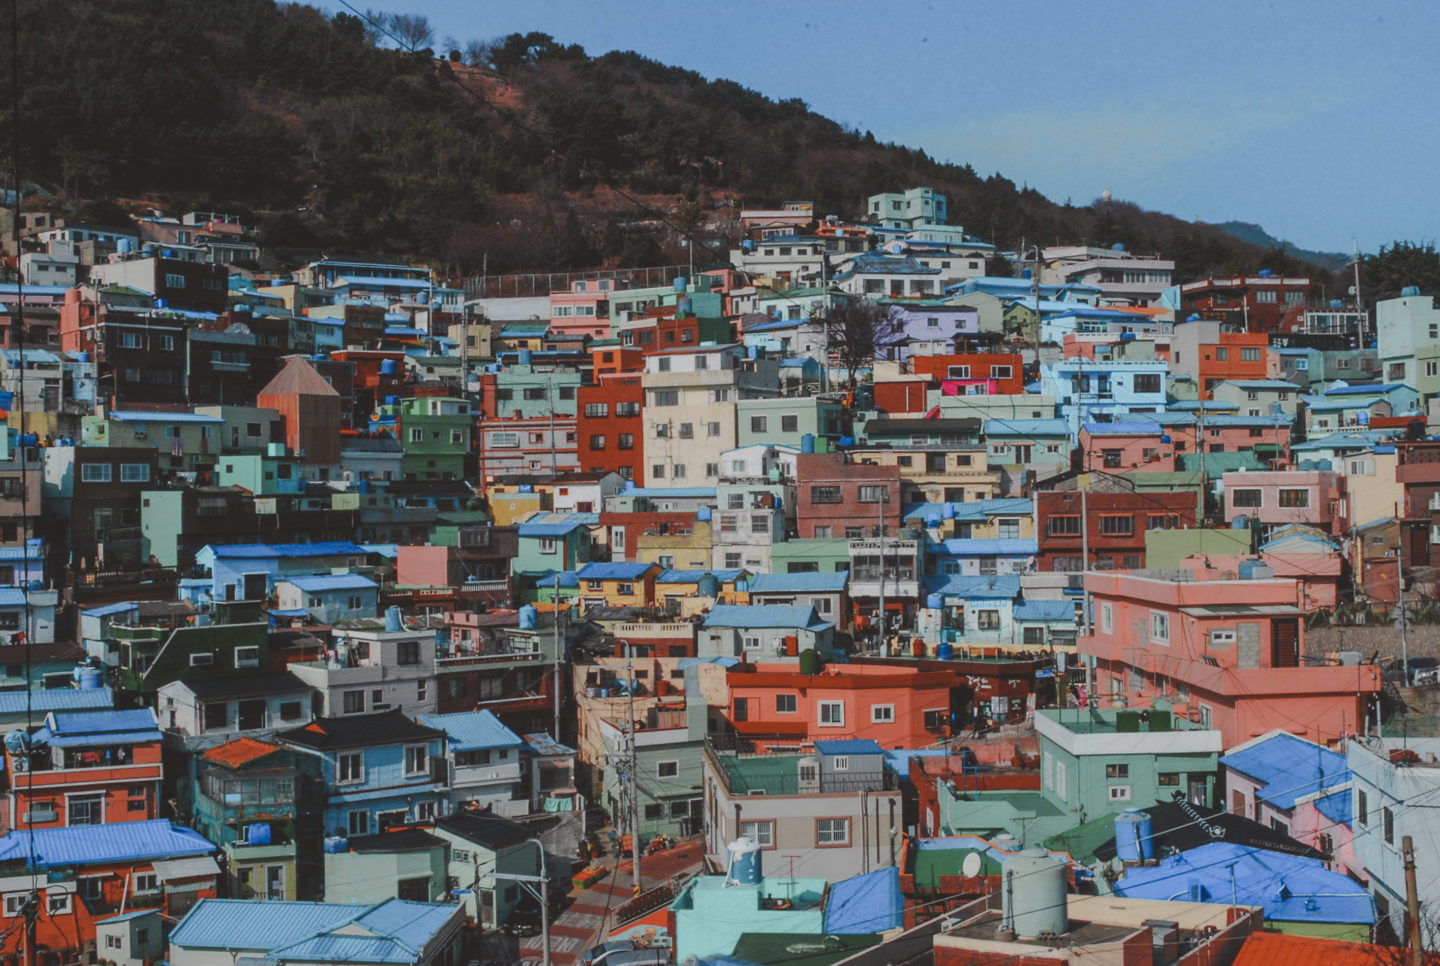 Gamcheon Culture Village, Busan, South Korea |Willemstad, Curacao | most colorful places in the world